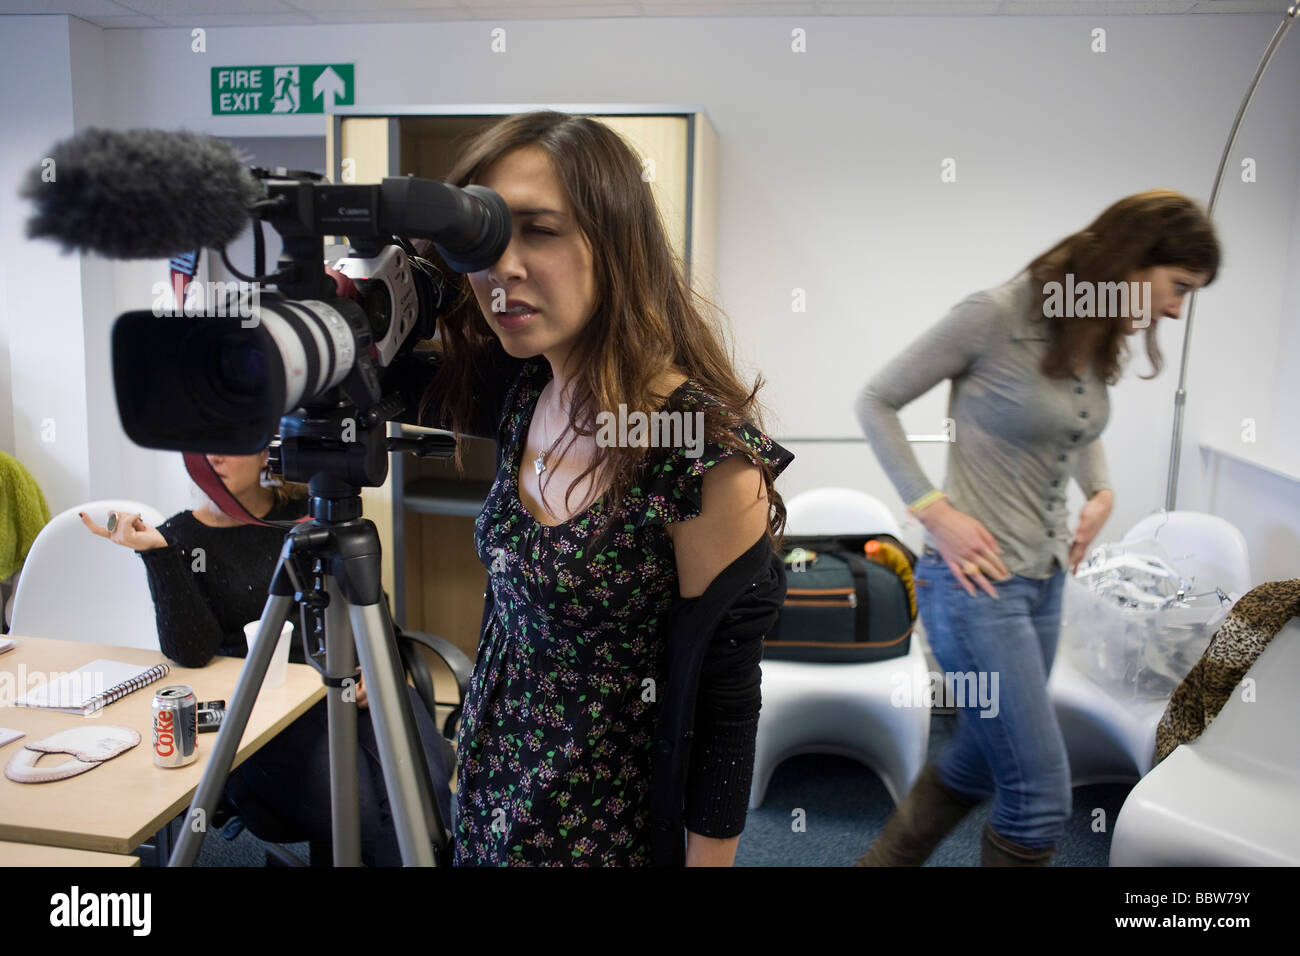 Personality Myleene Klass during promo filming before launch of her own Baby K collection at Mothercare s UK HQ - Stock Image